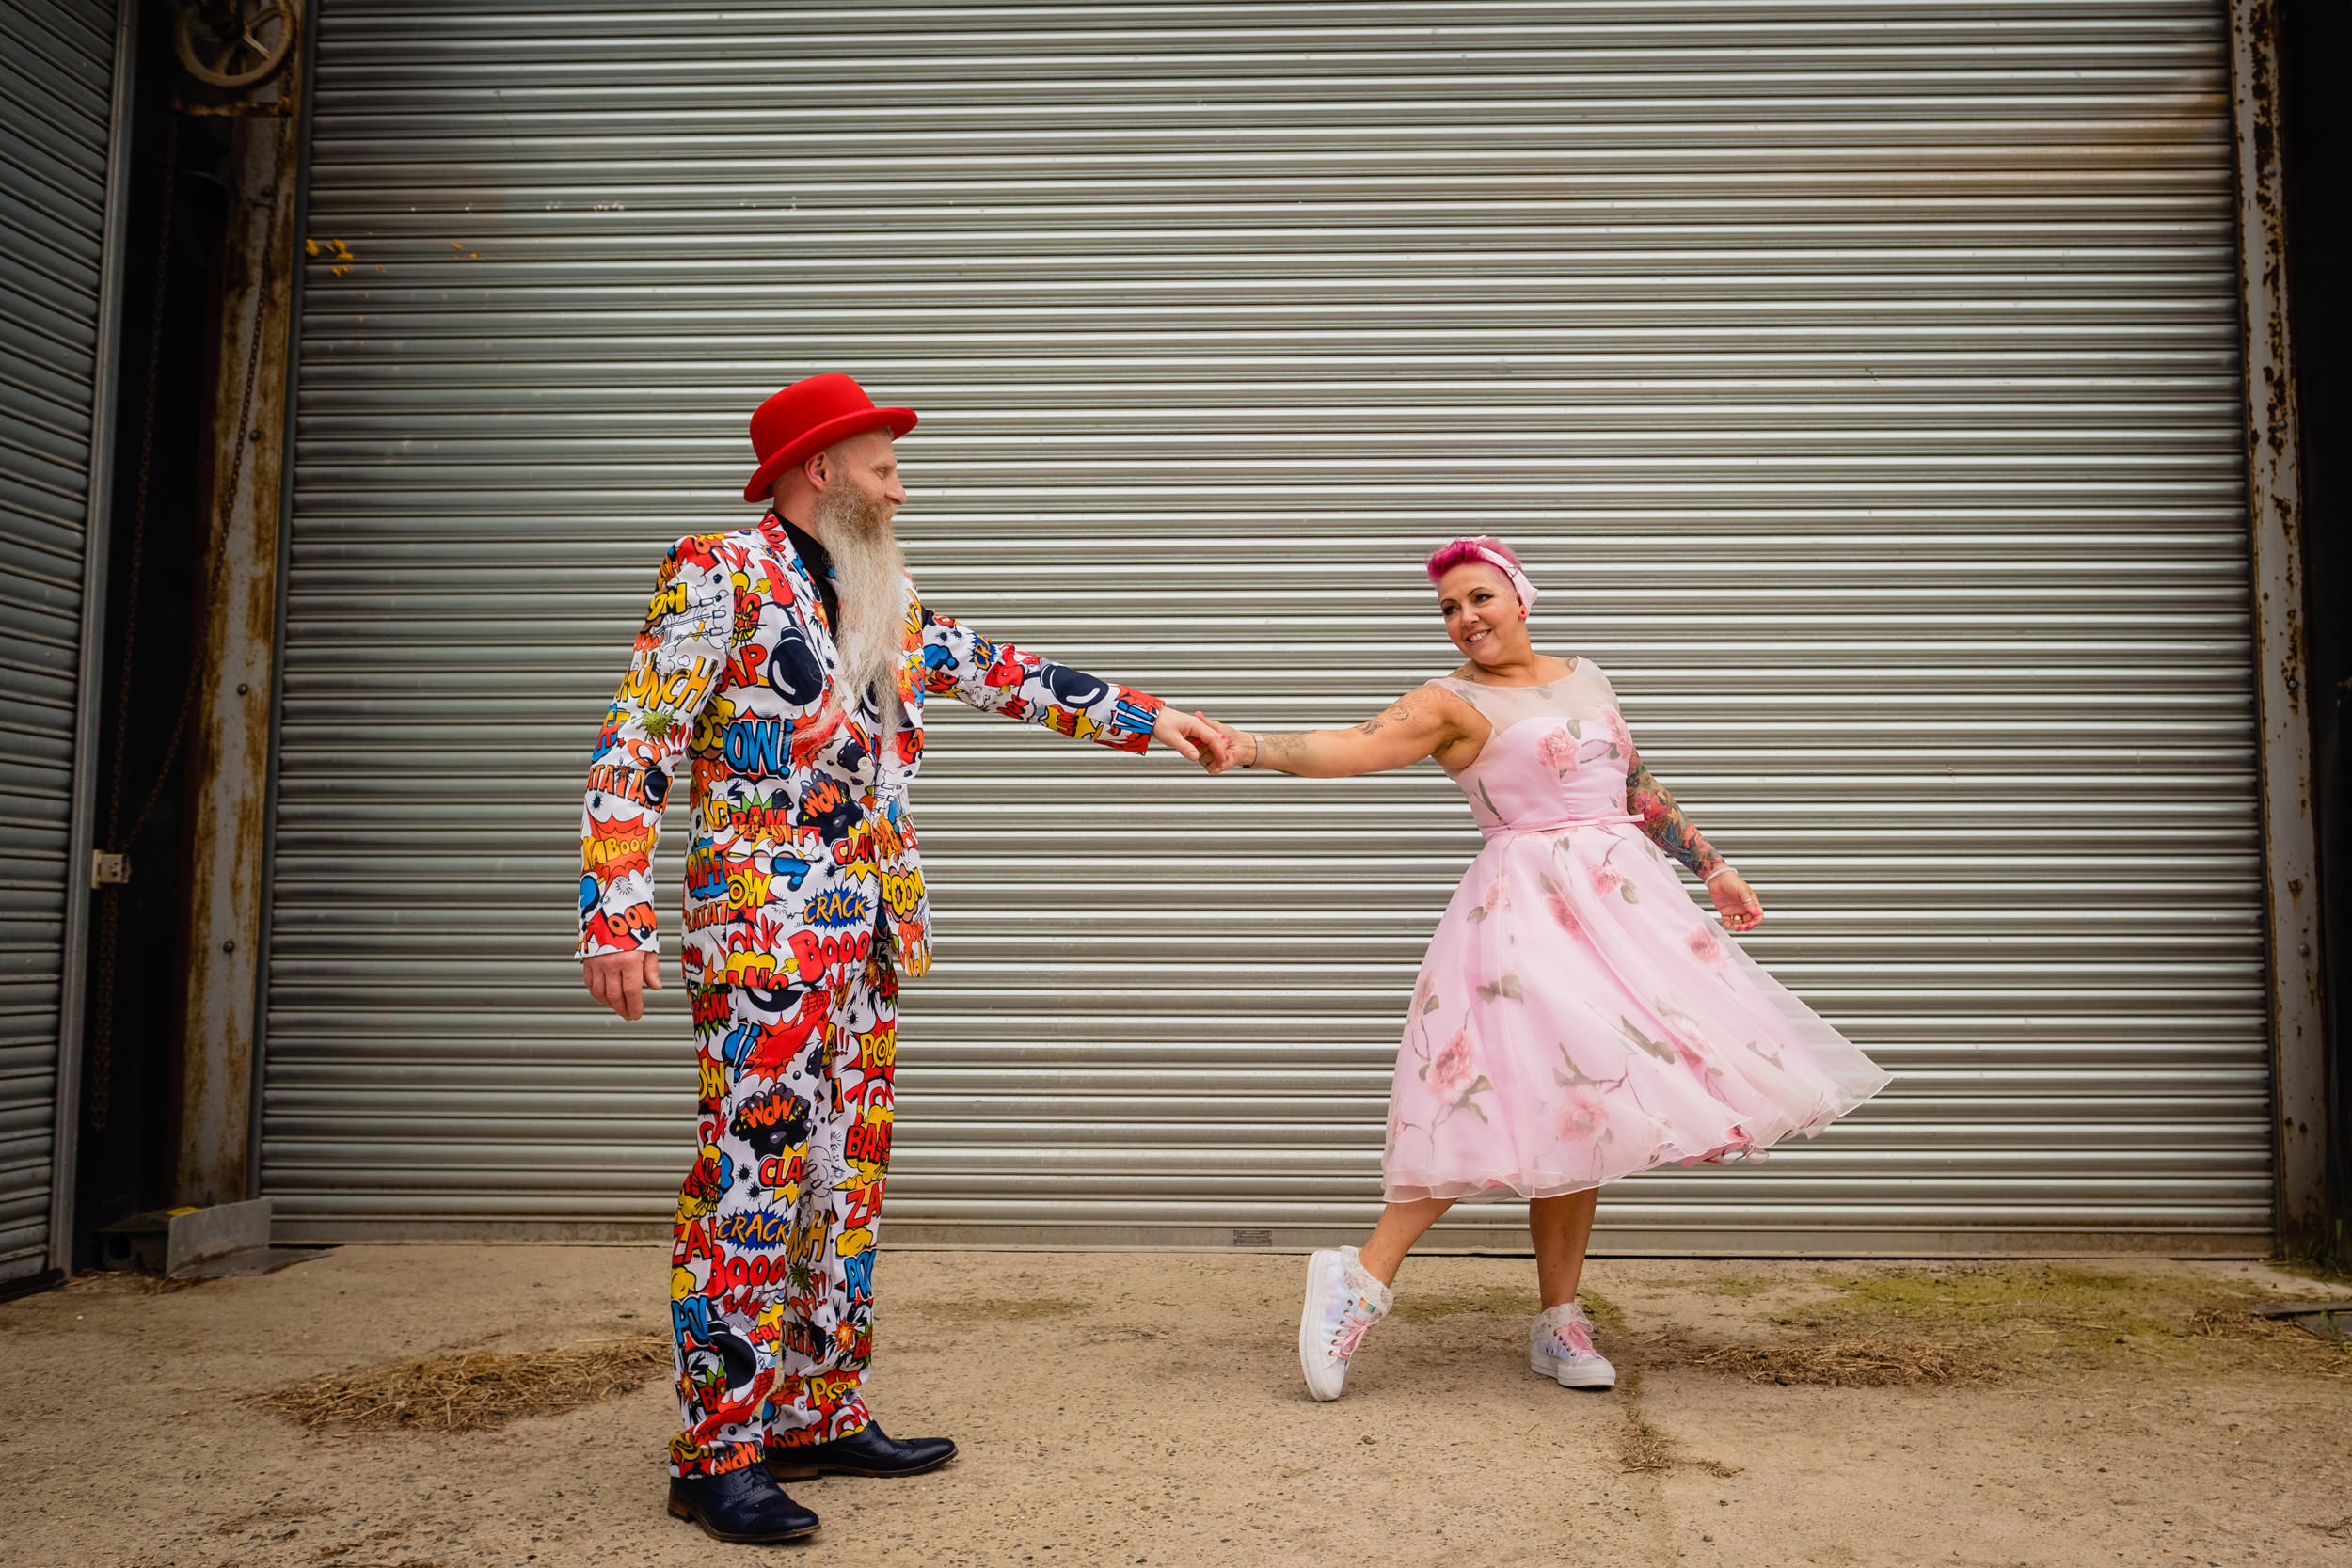 bride and groom dancing in a farmyard. wold top brewery wedding photography by emma and rich.